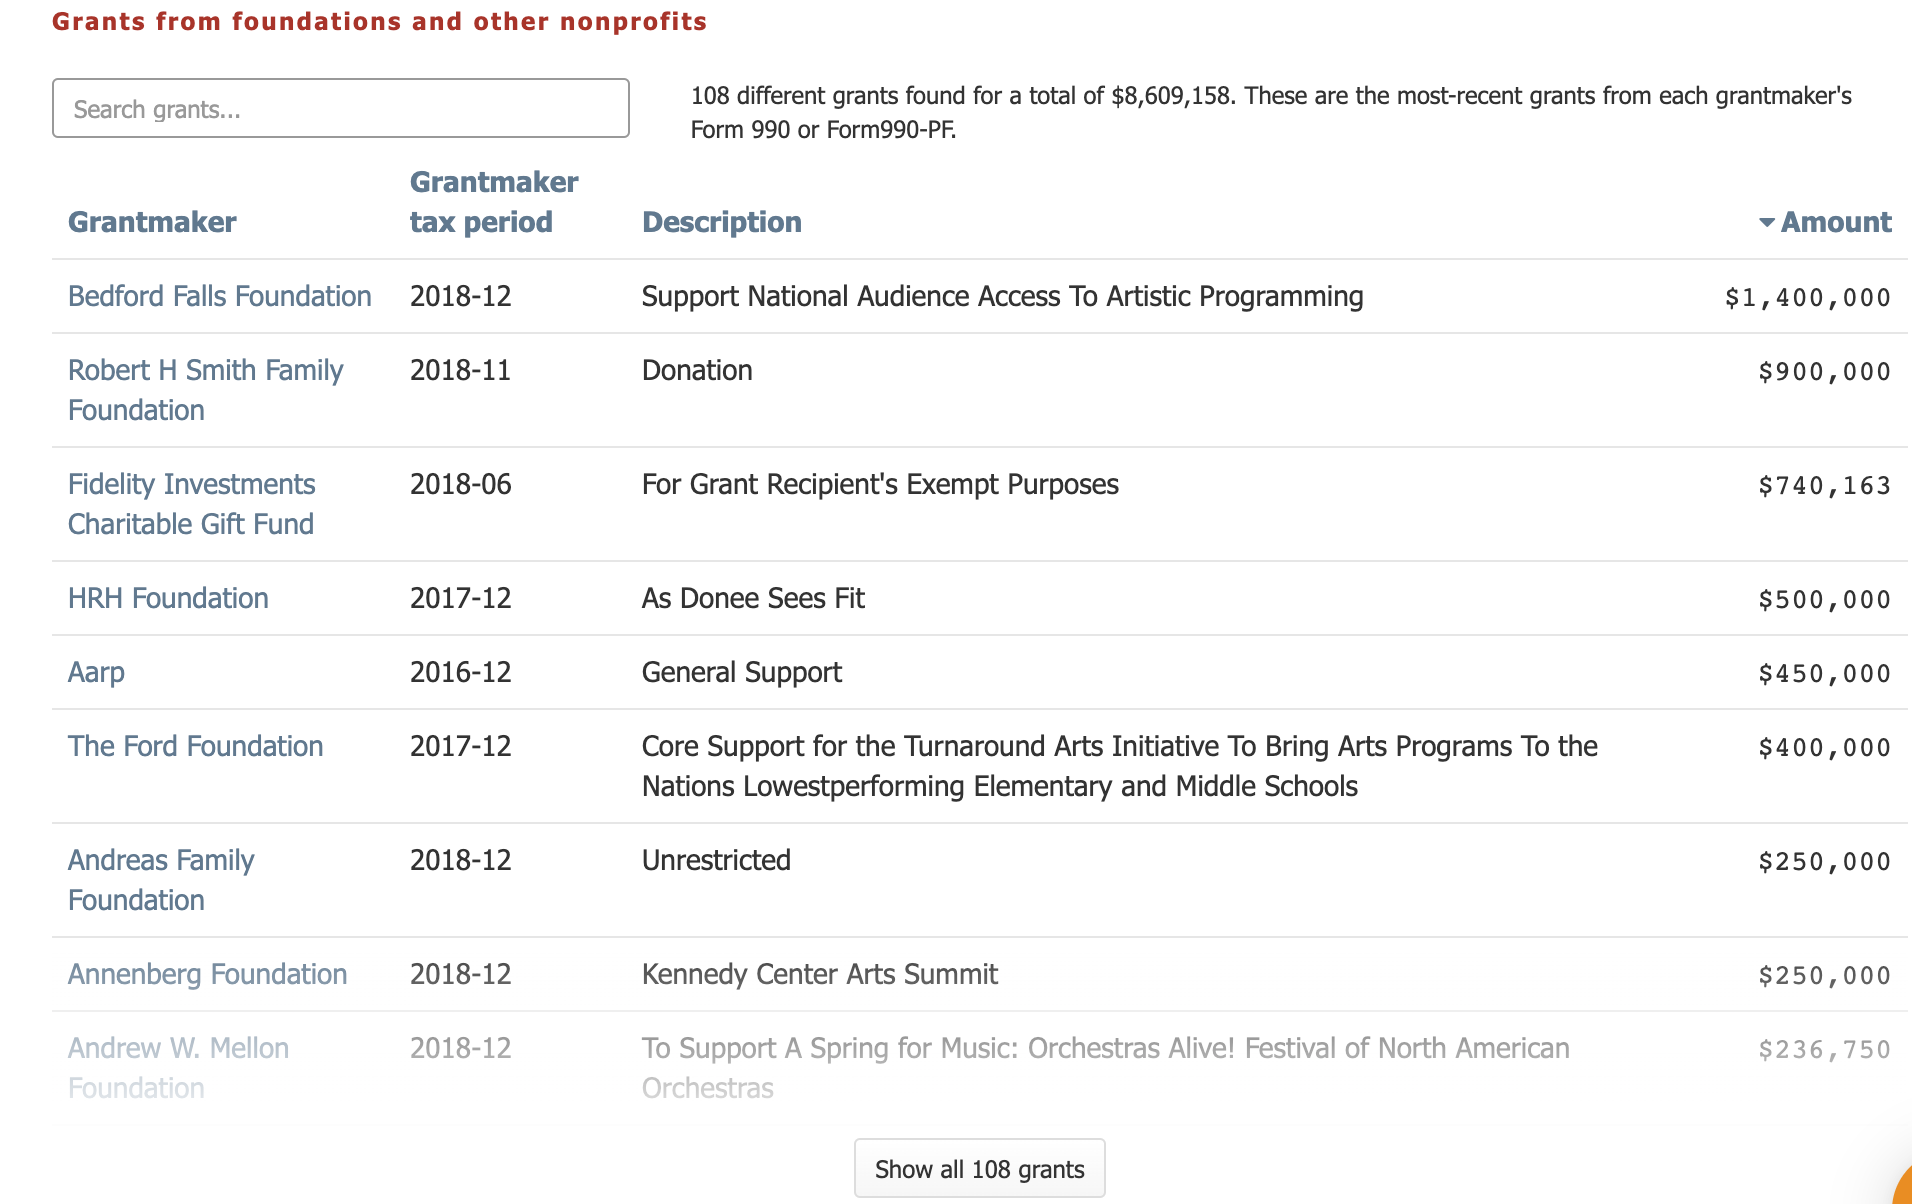 Grants from foundations and other nonprofits